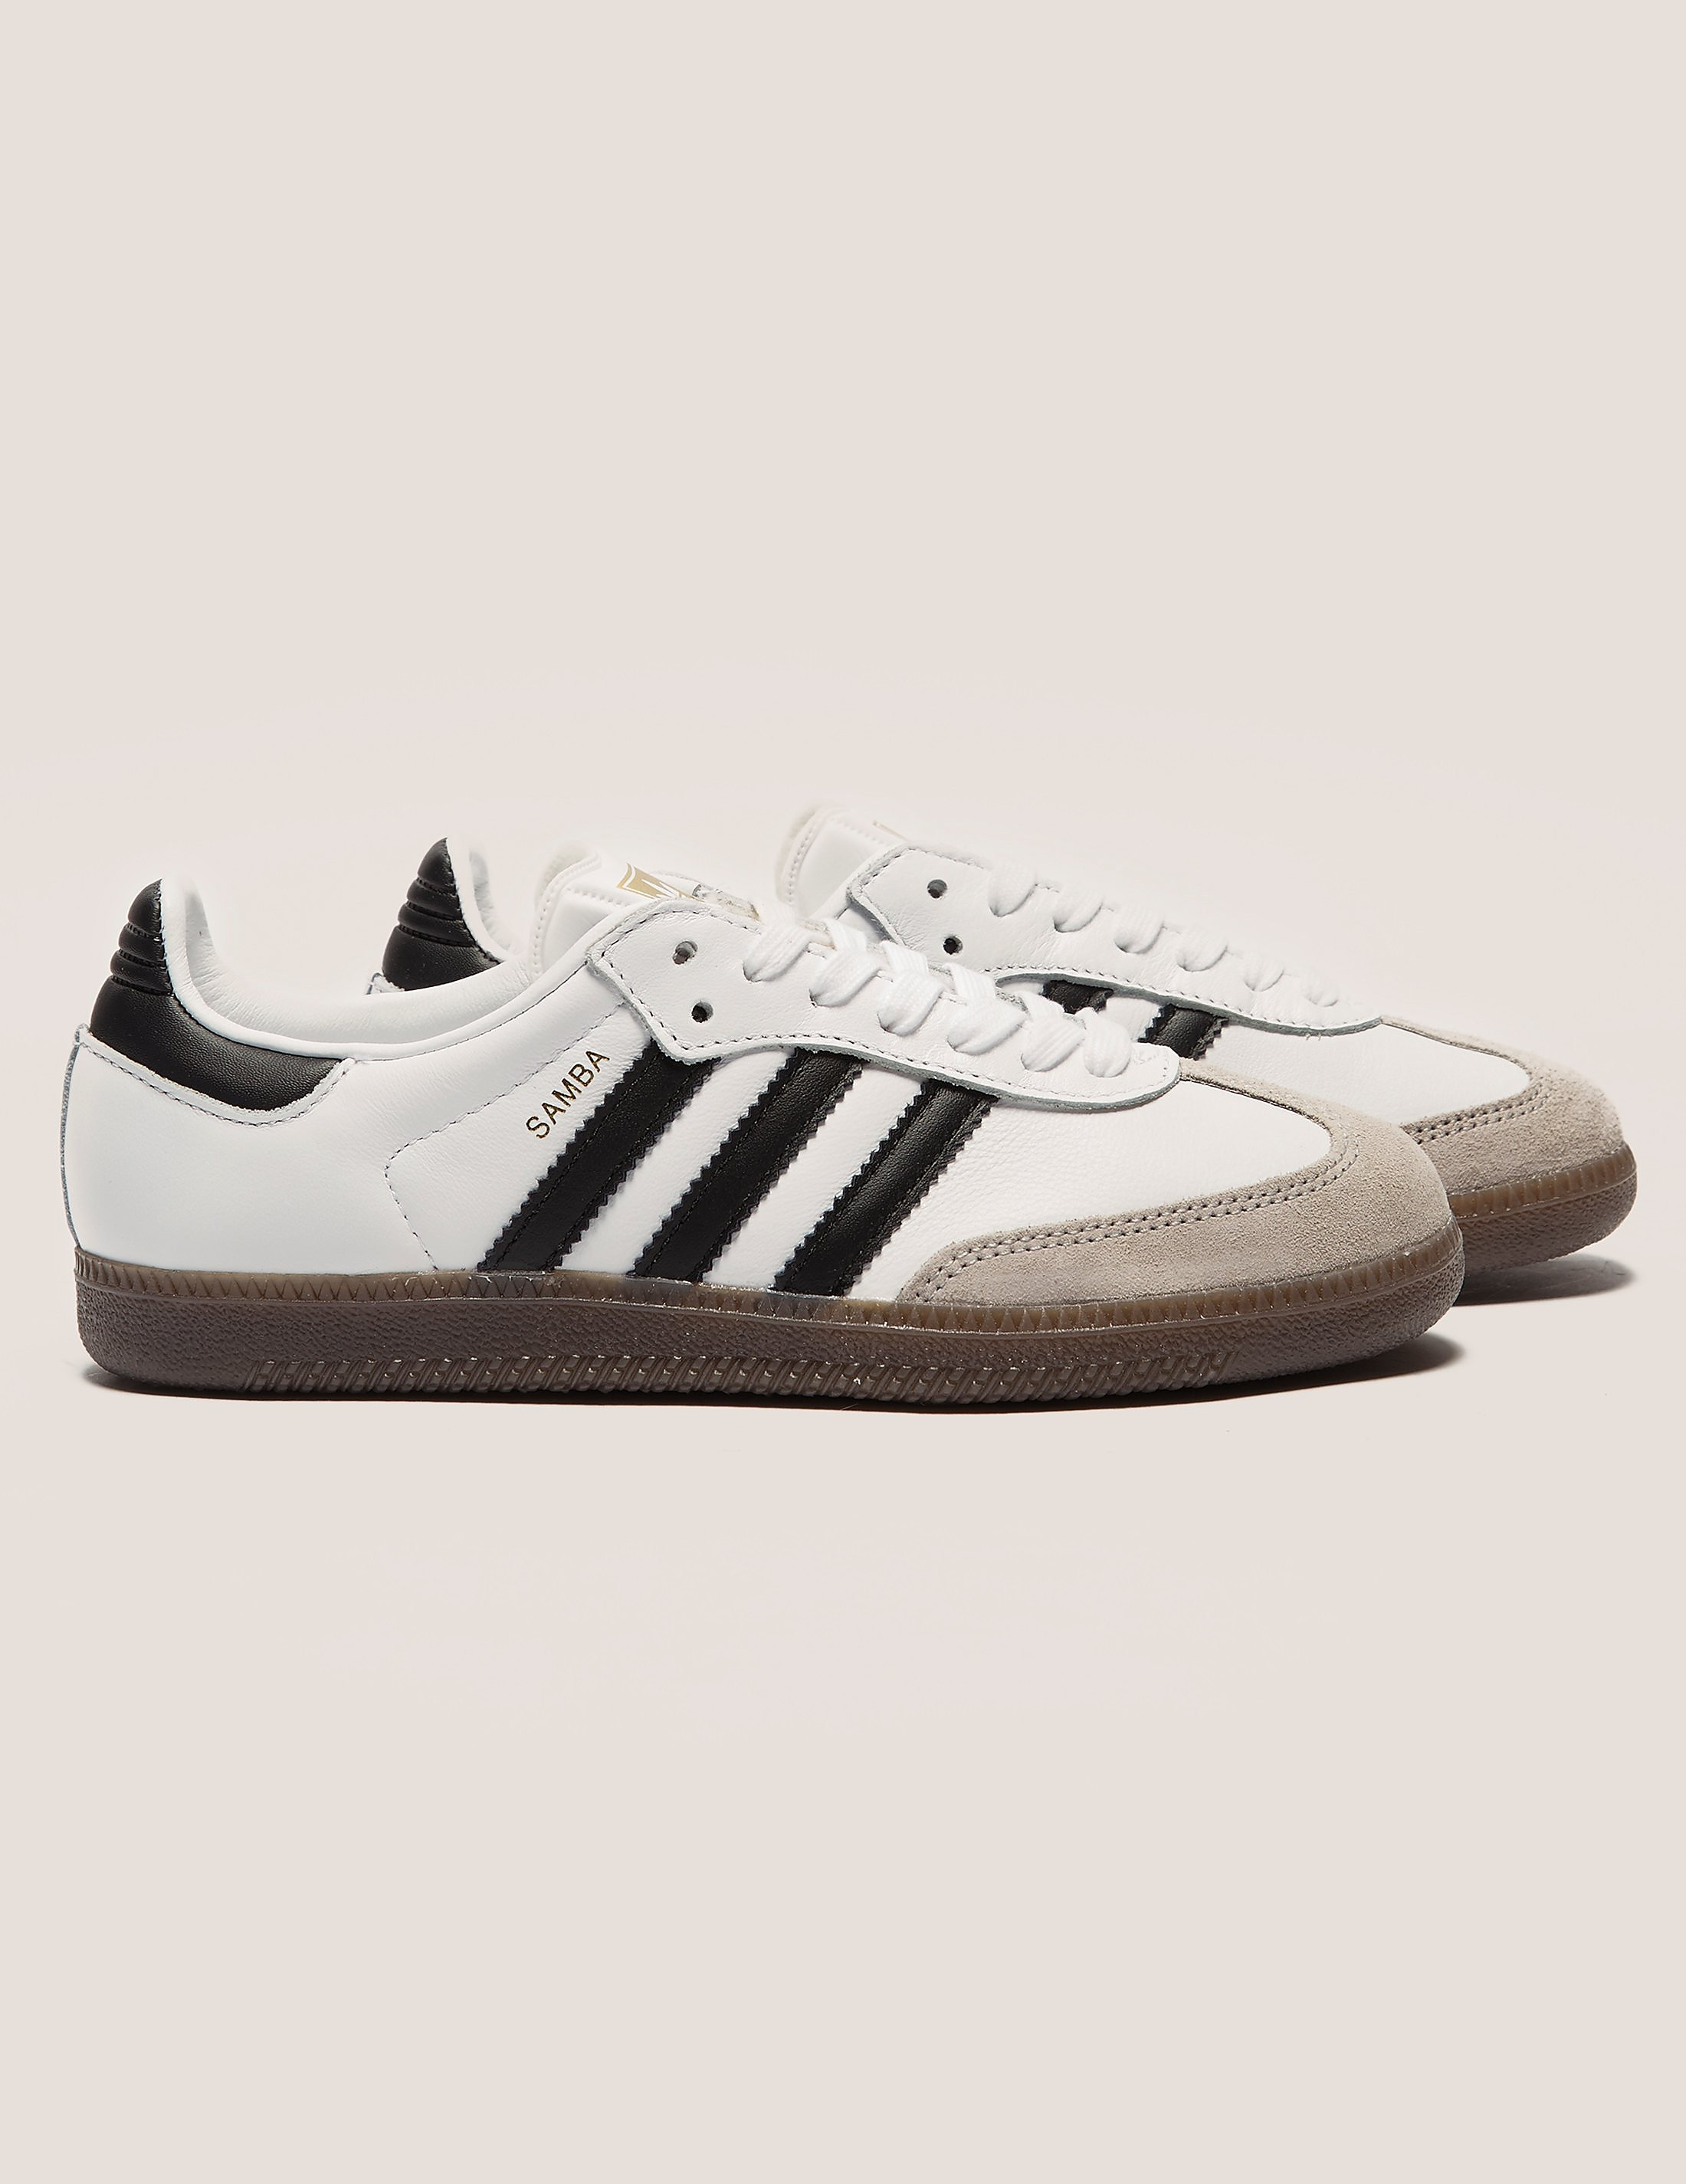 adidas Originals Samba OG Women's